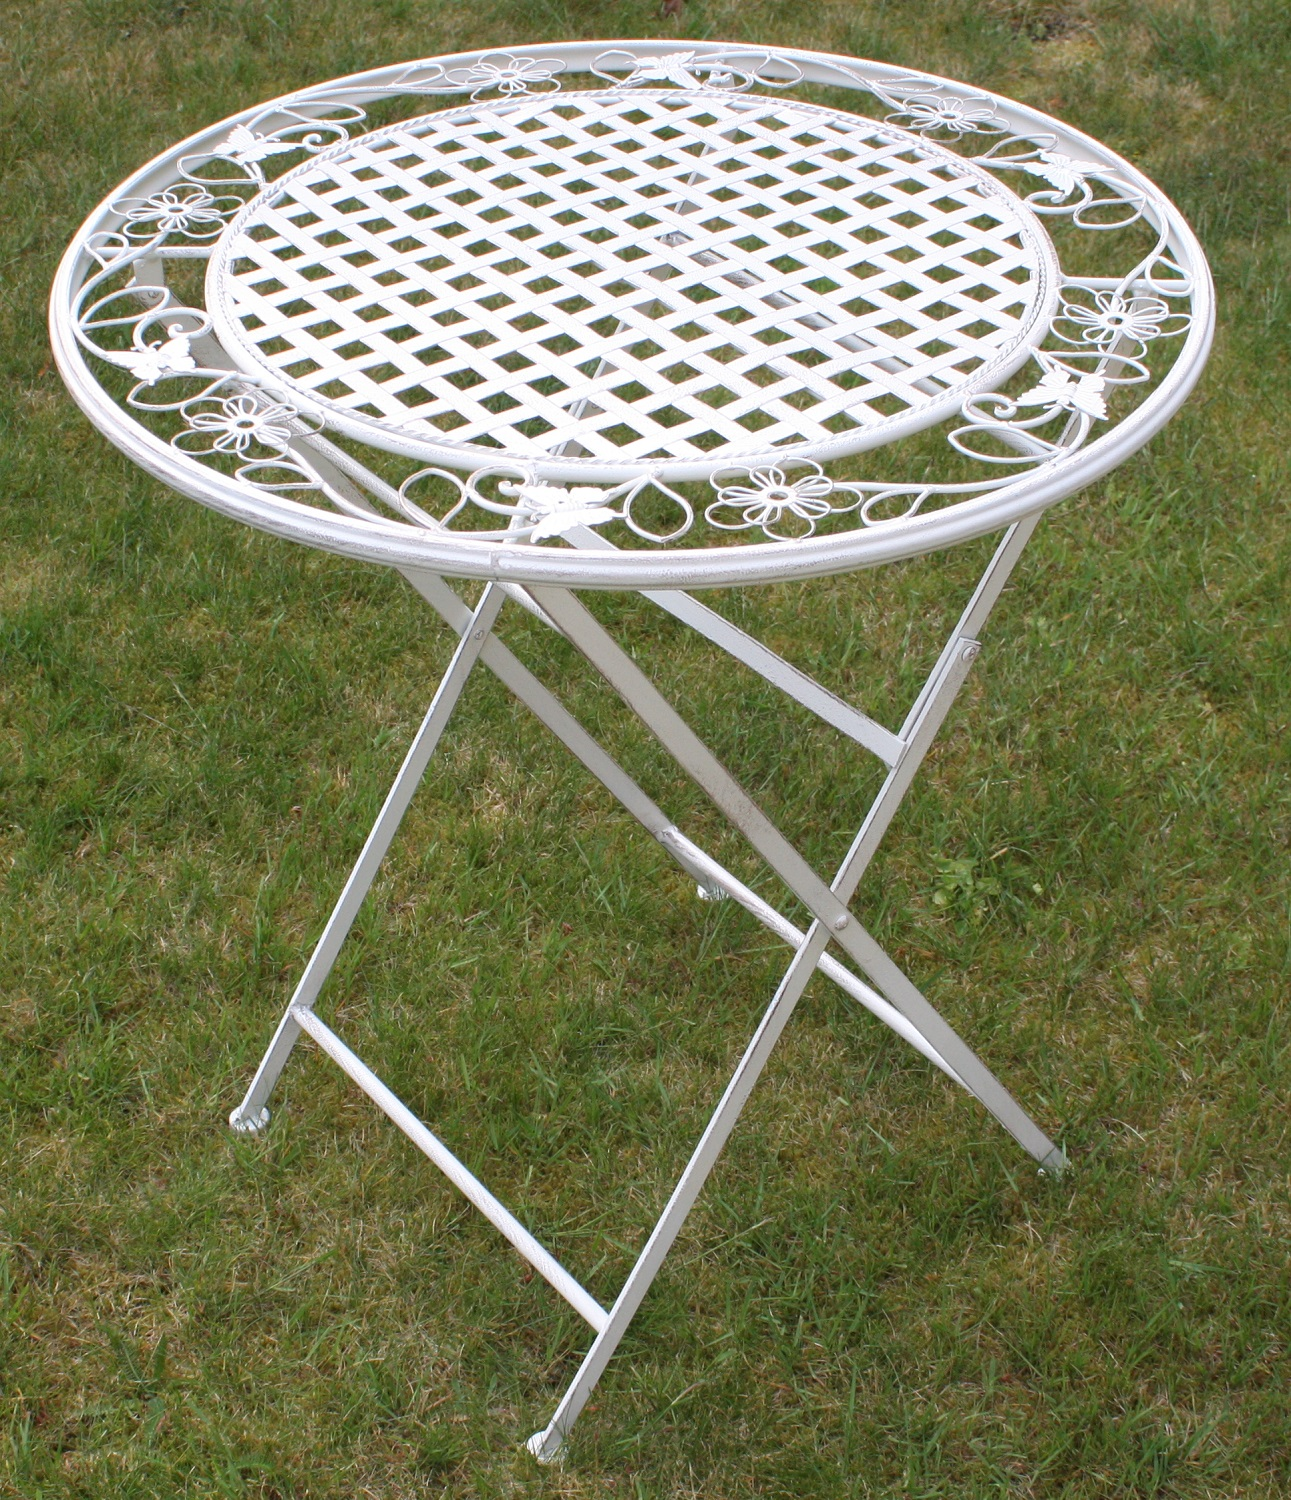 Maribelle Folding Metal Garden Table Furniture